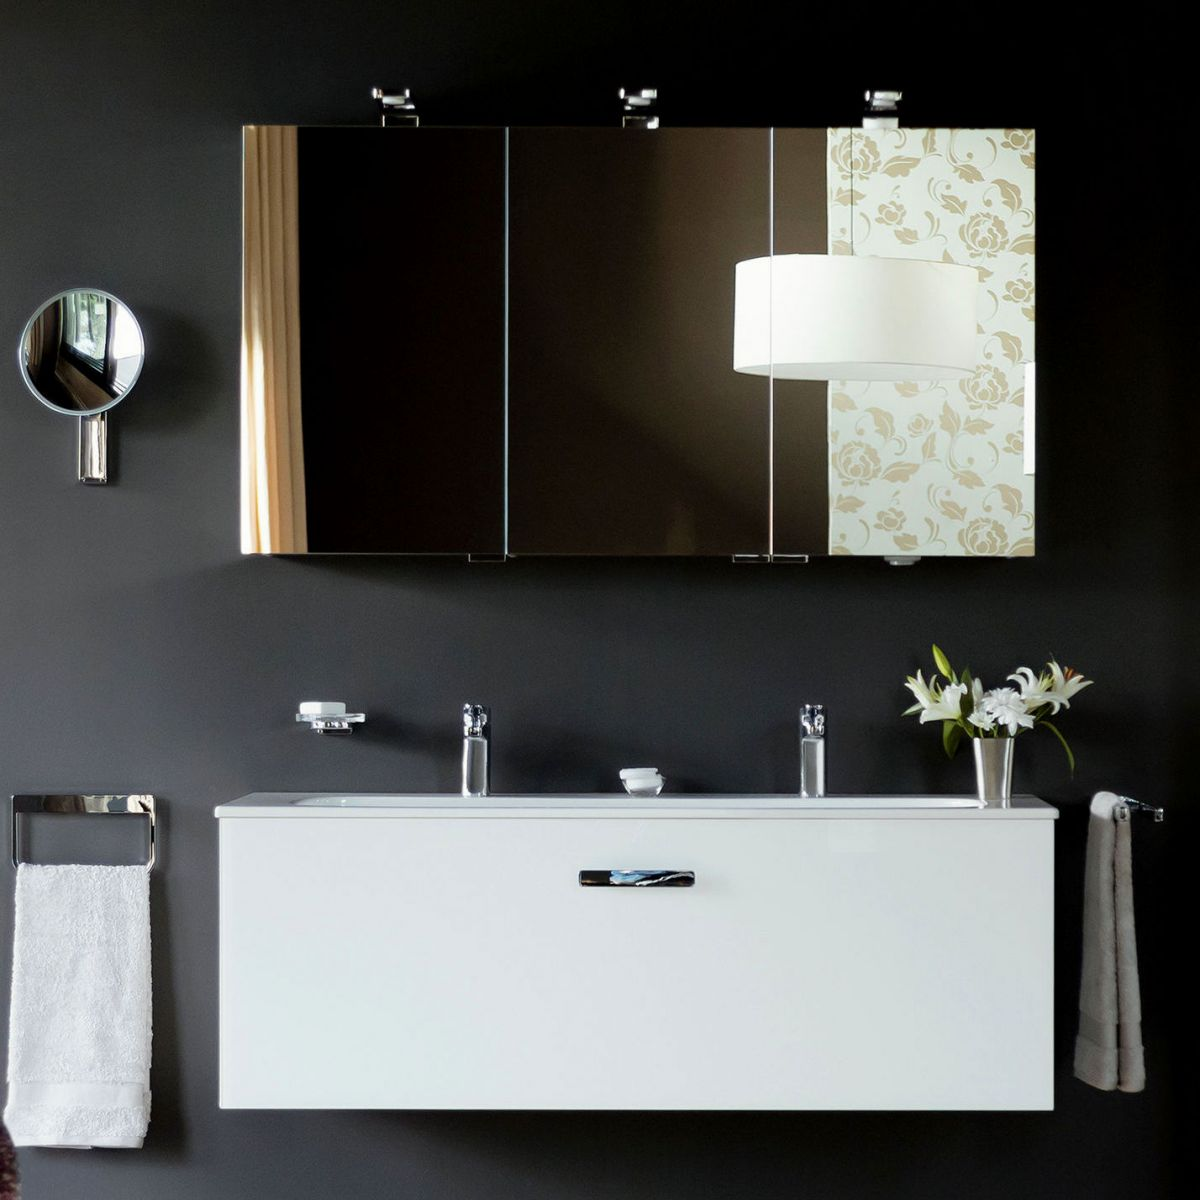 Bathroom Cabinets Mirrored Wall Cabinets Buy At 30 Off